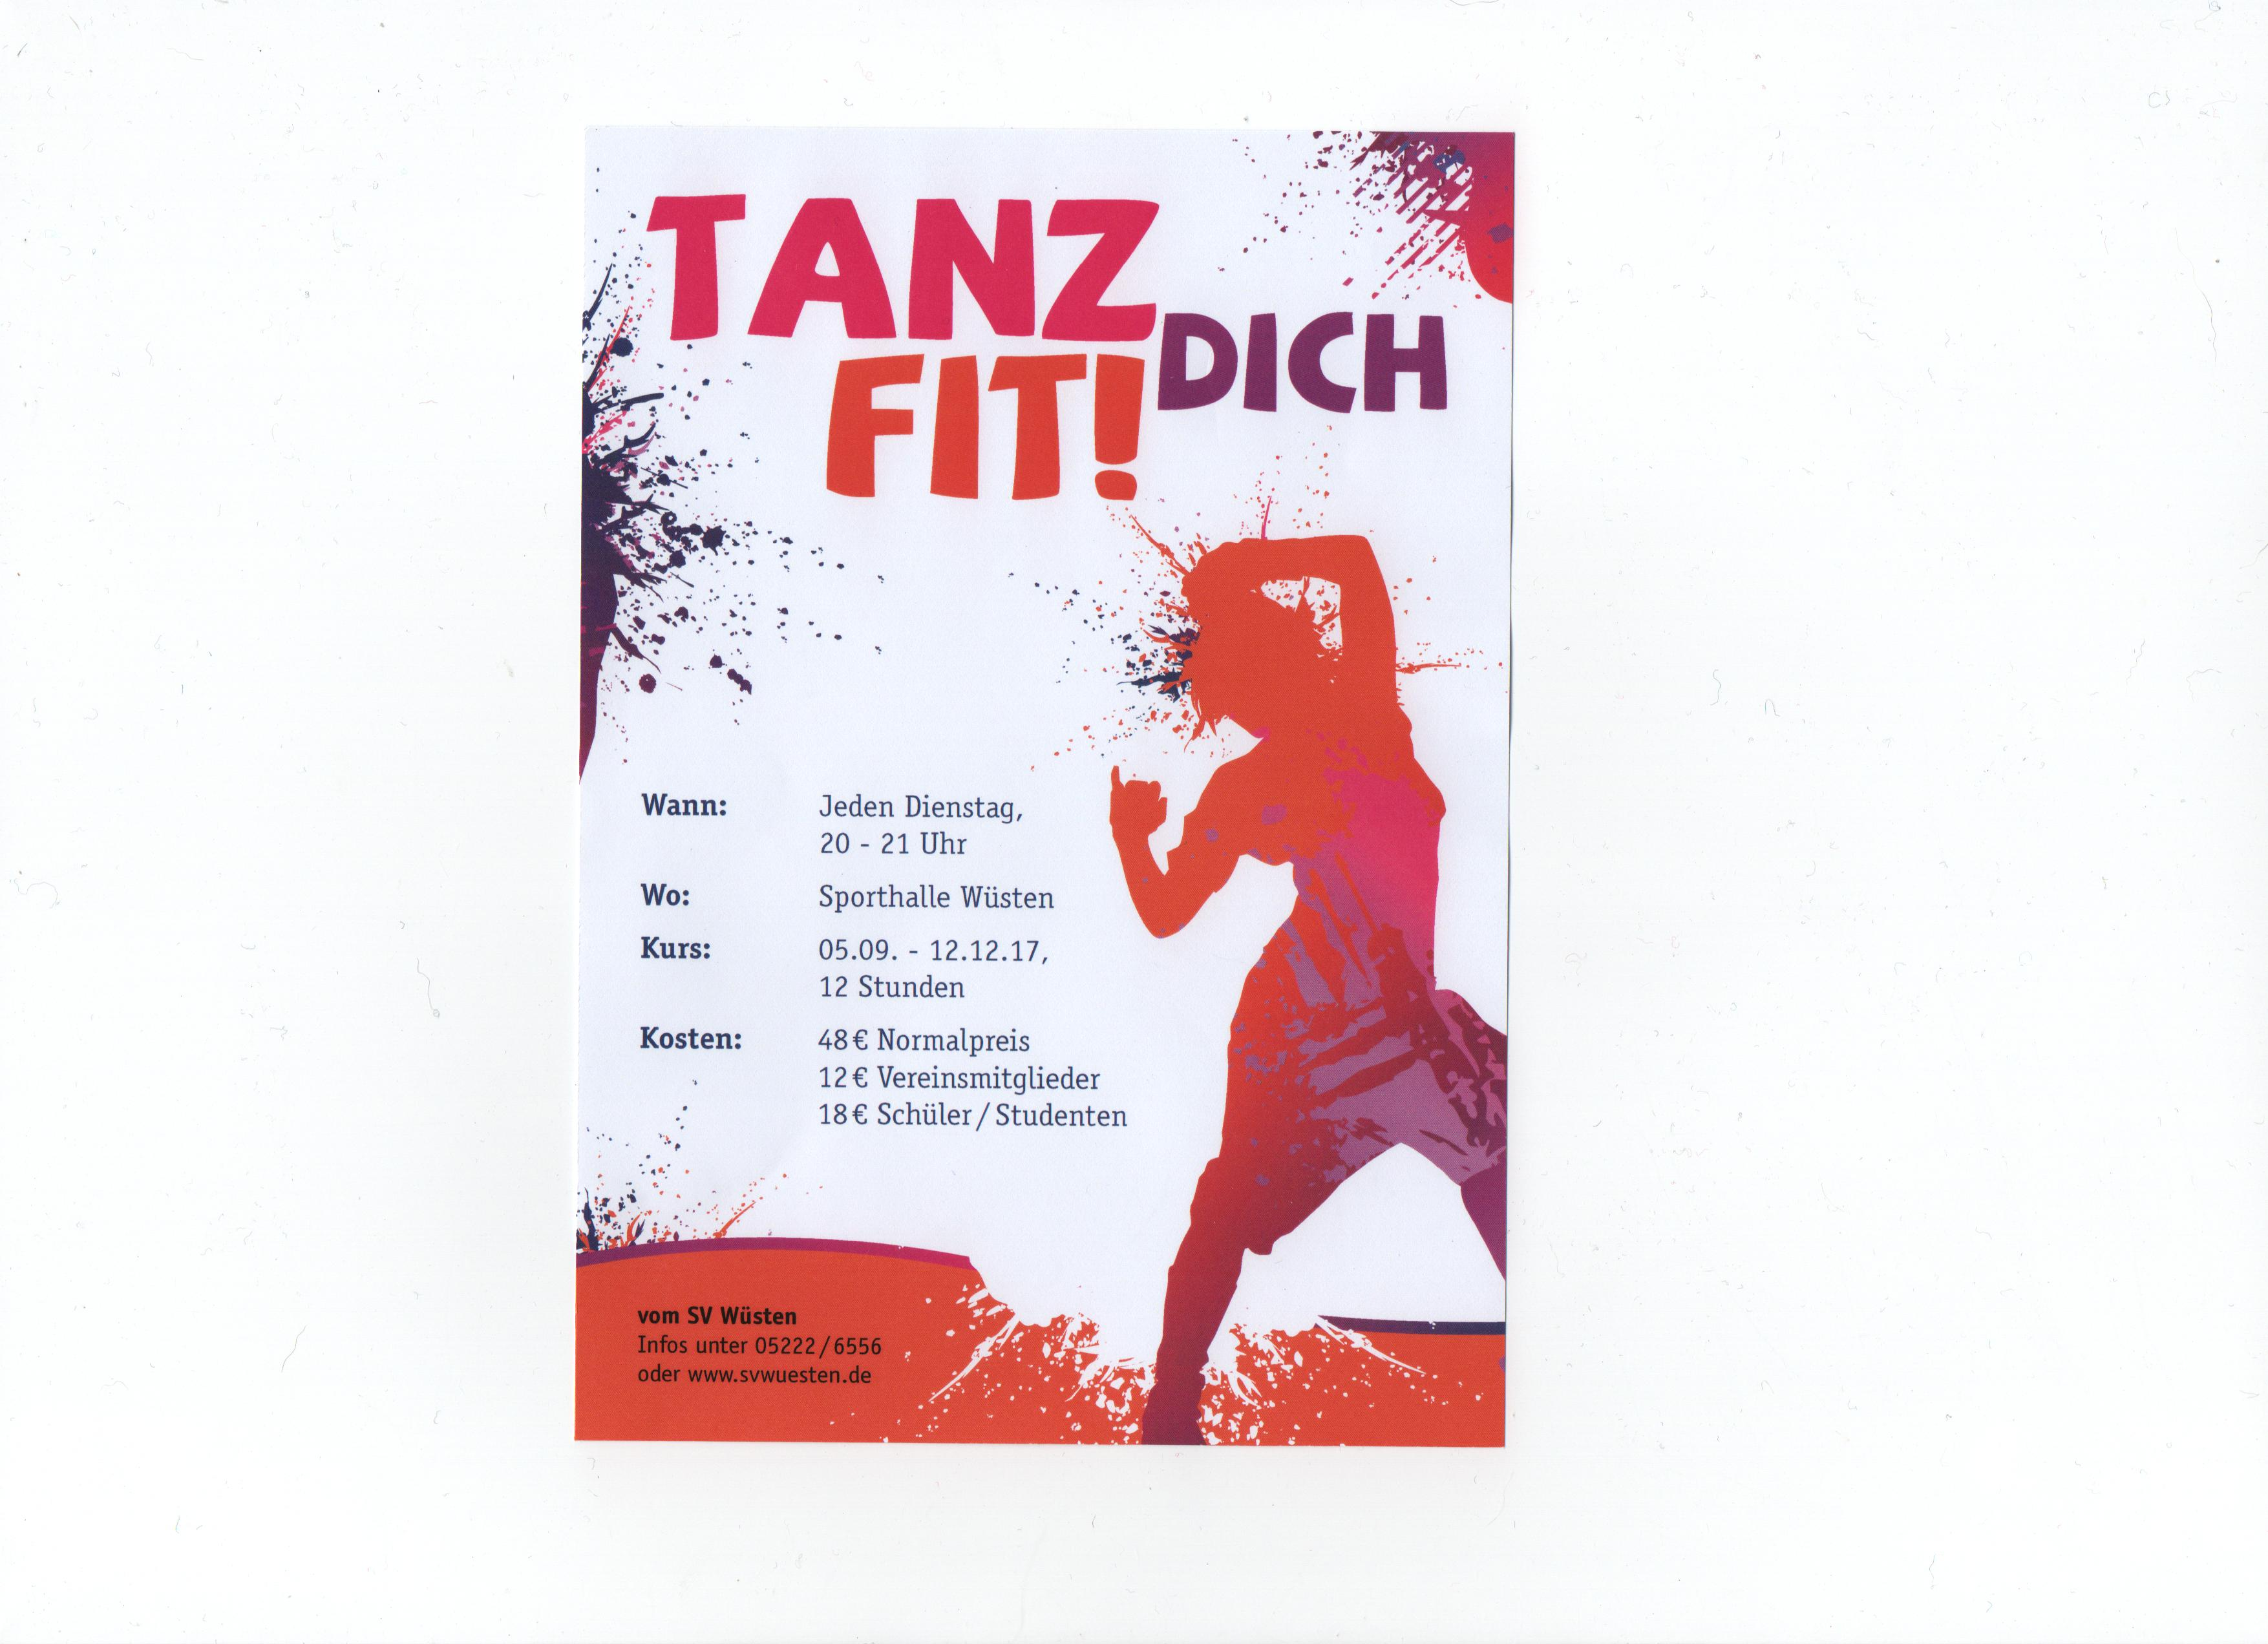 tanz dich fit 20170904 1040447883